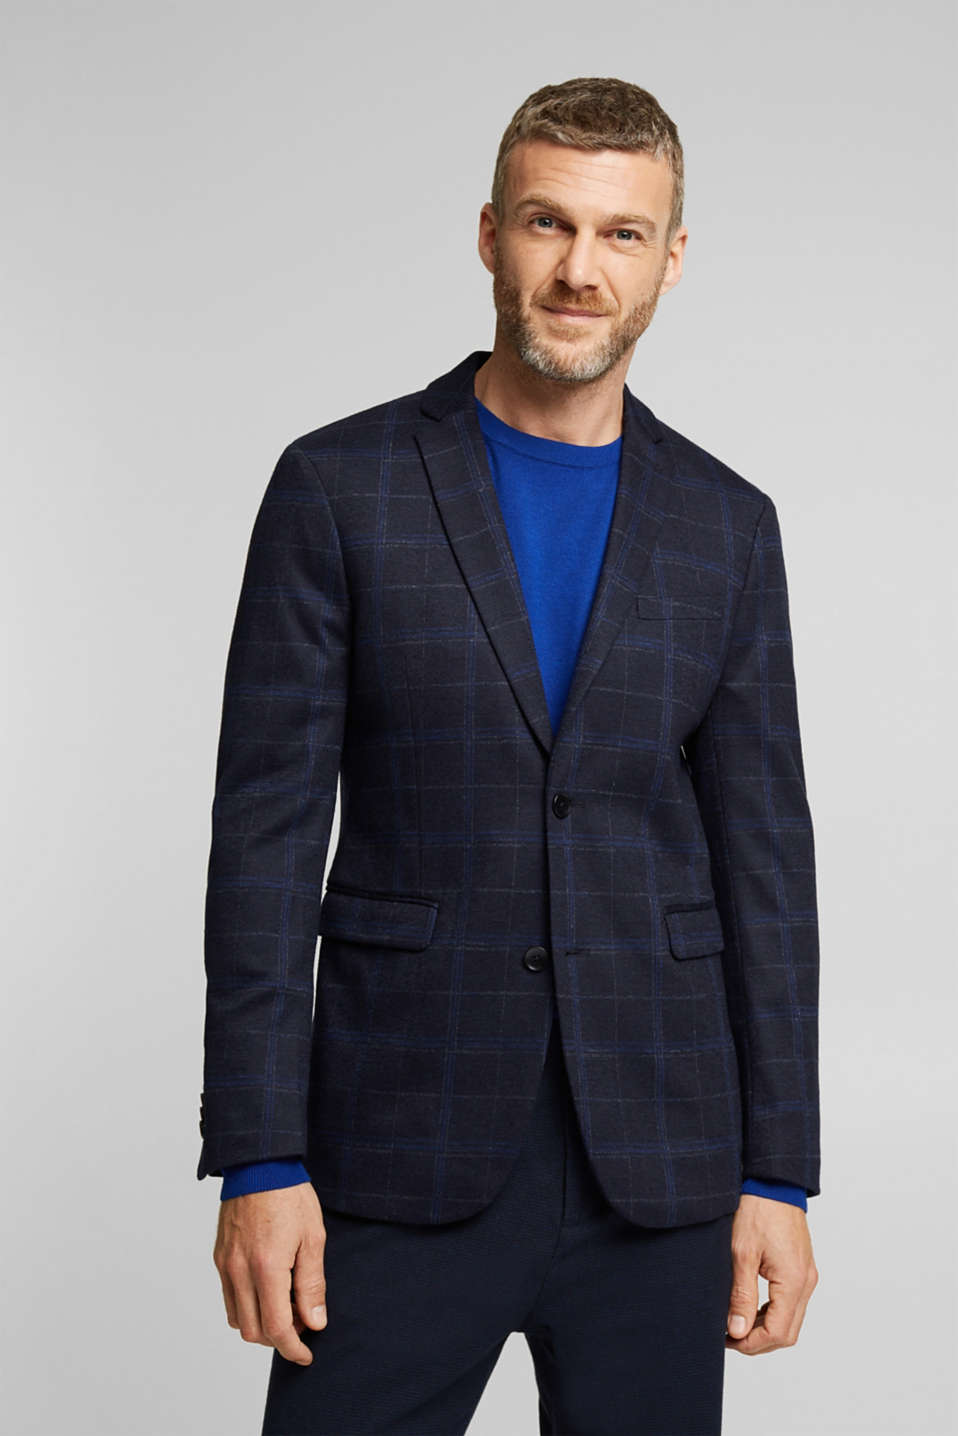 Esprit - knit check blazer